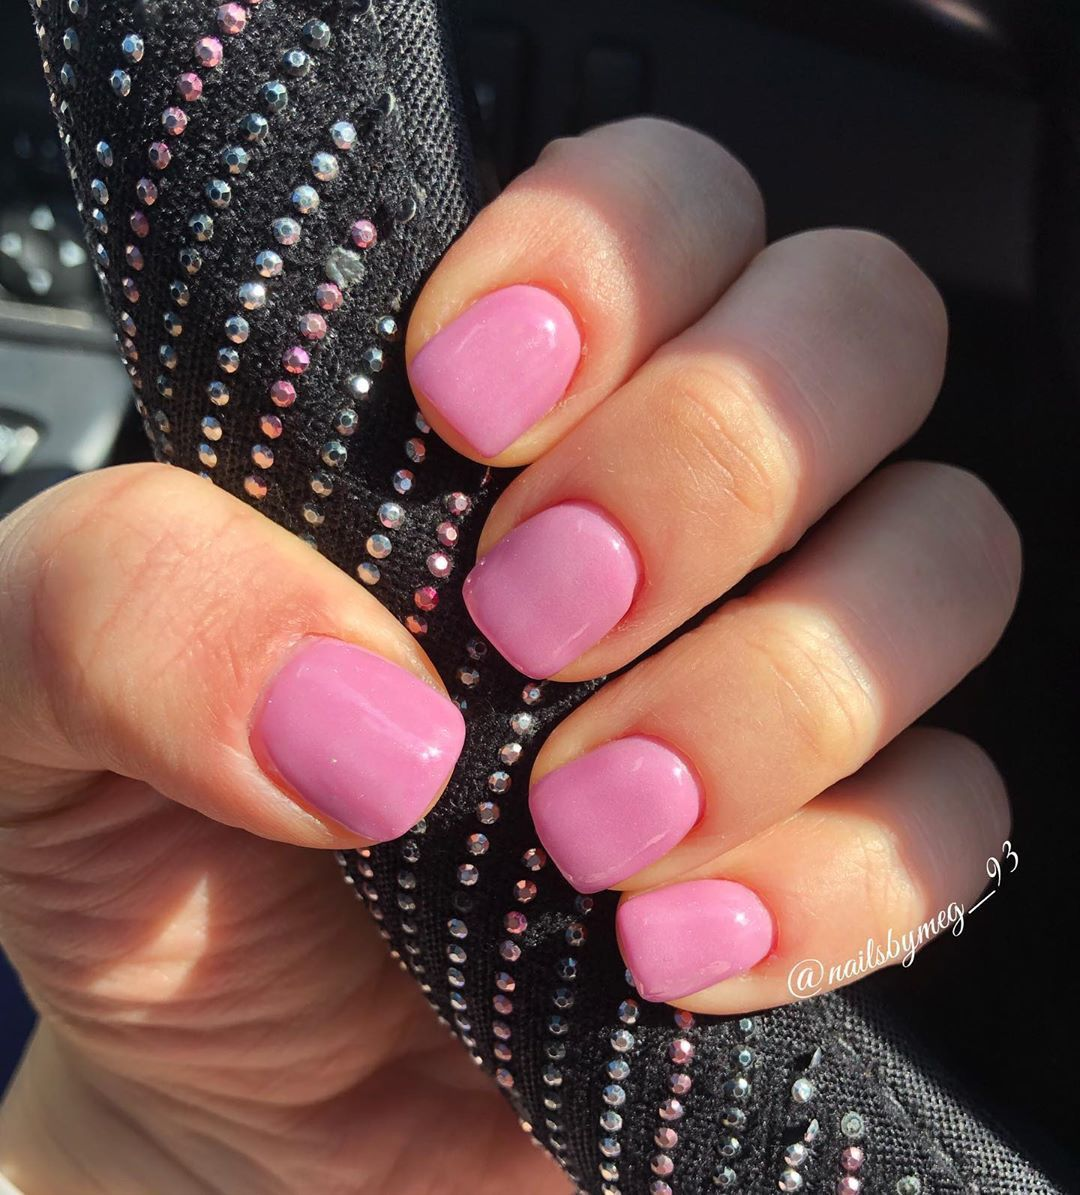 52 Best Dip Powder Nail Color Ideas For 2020 In 2020 With Images